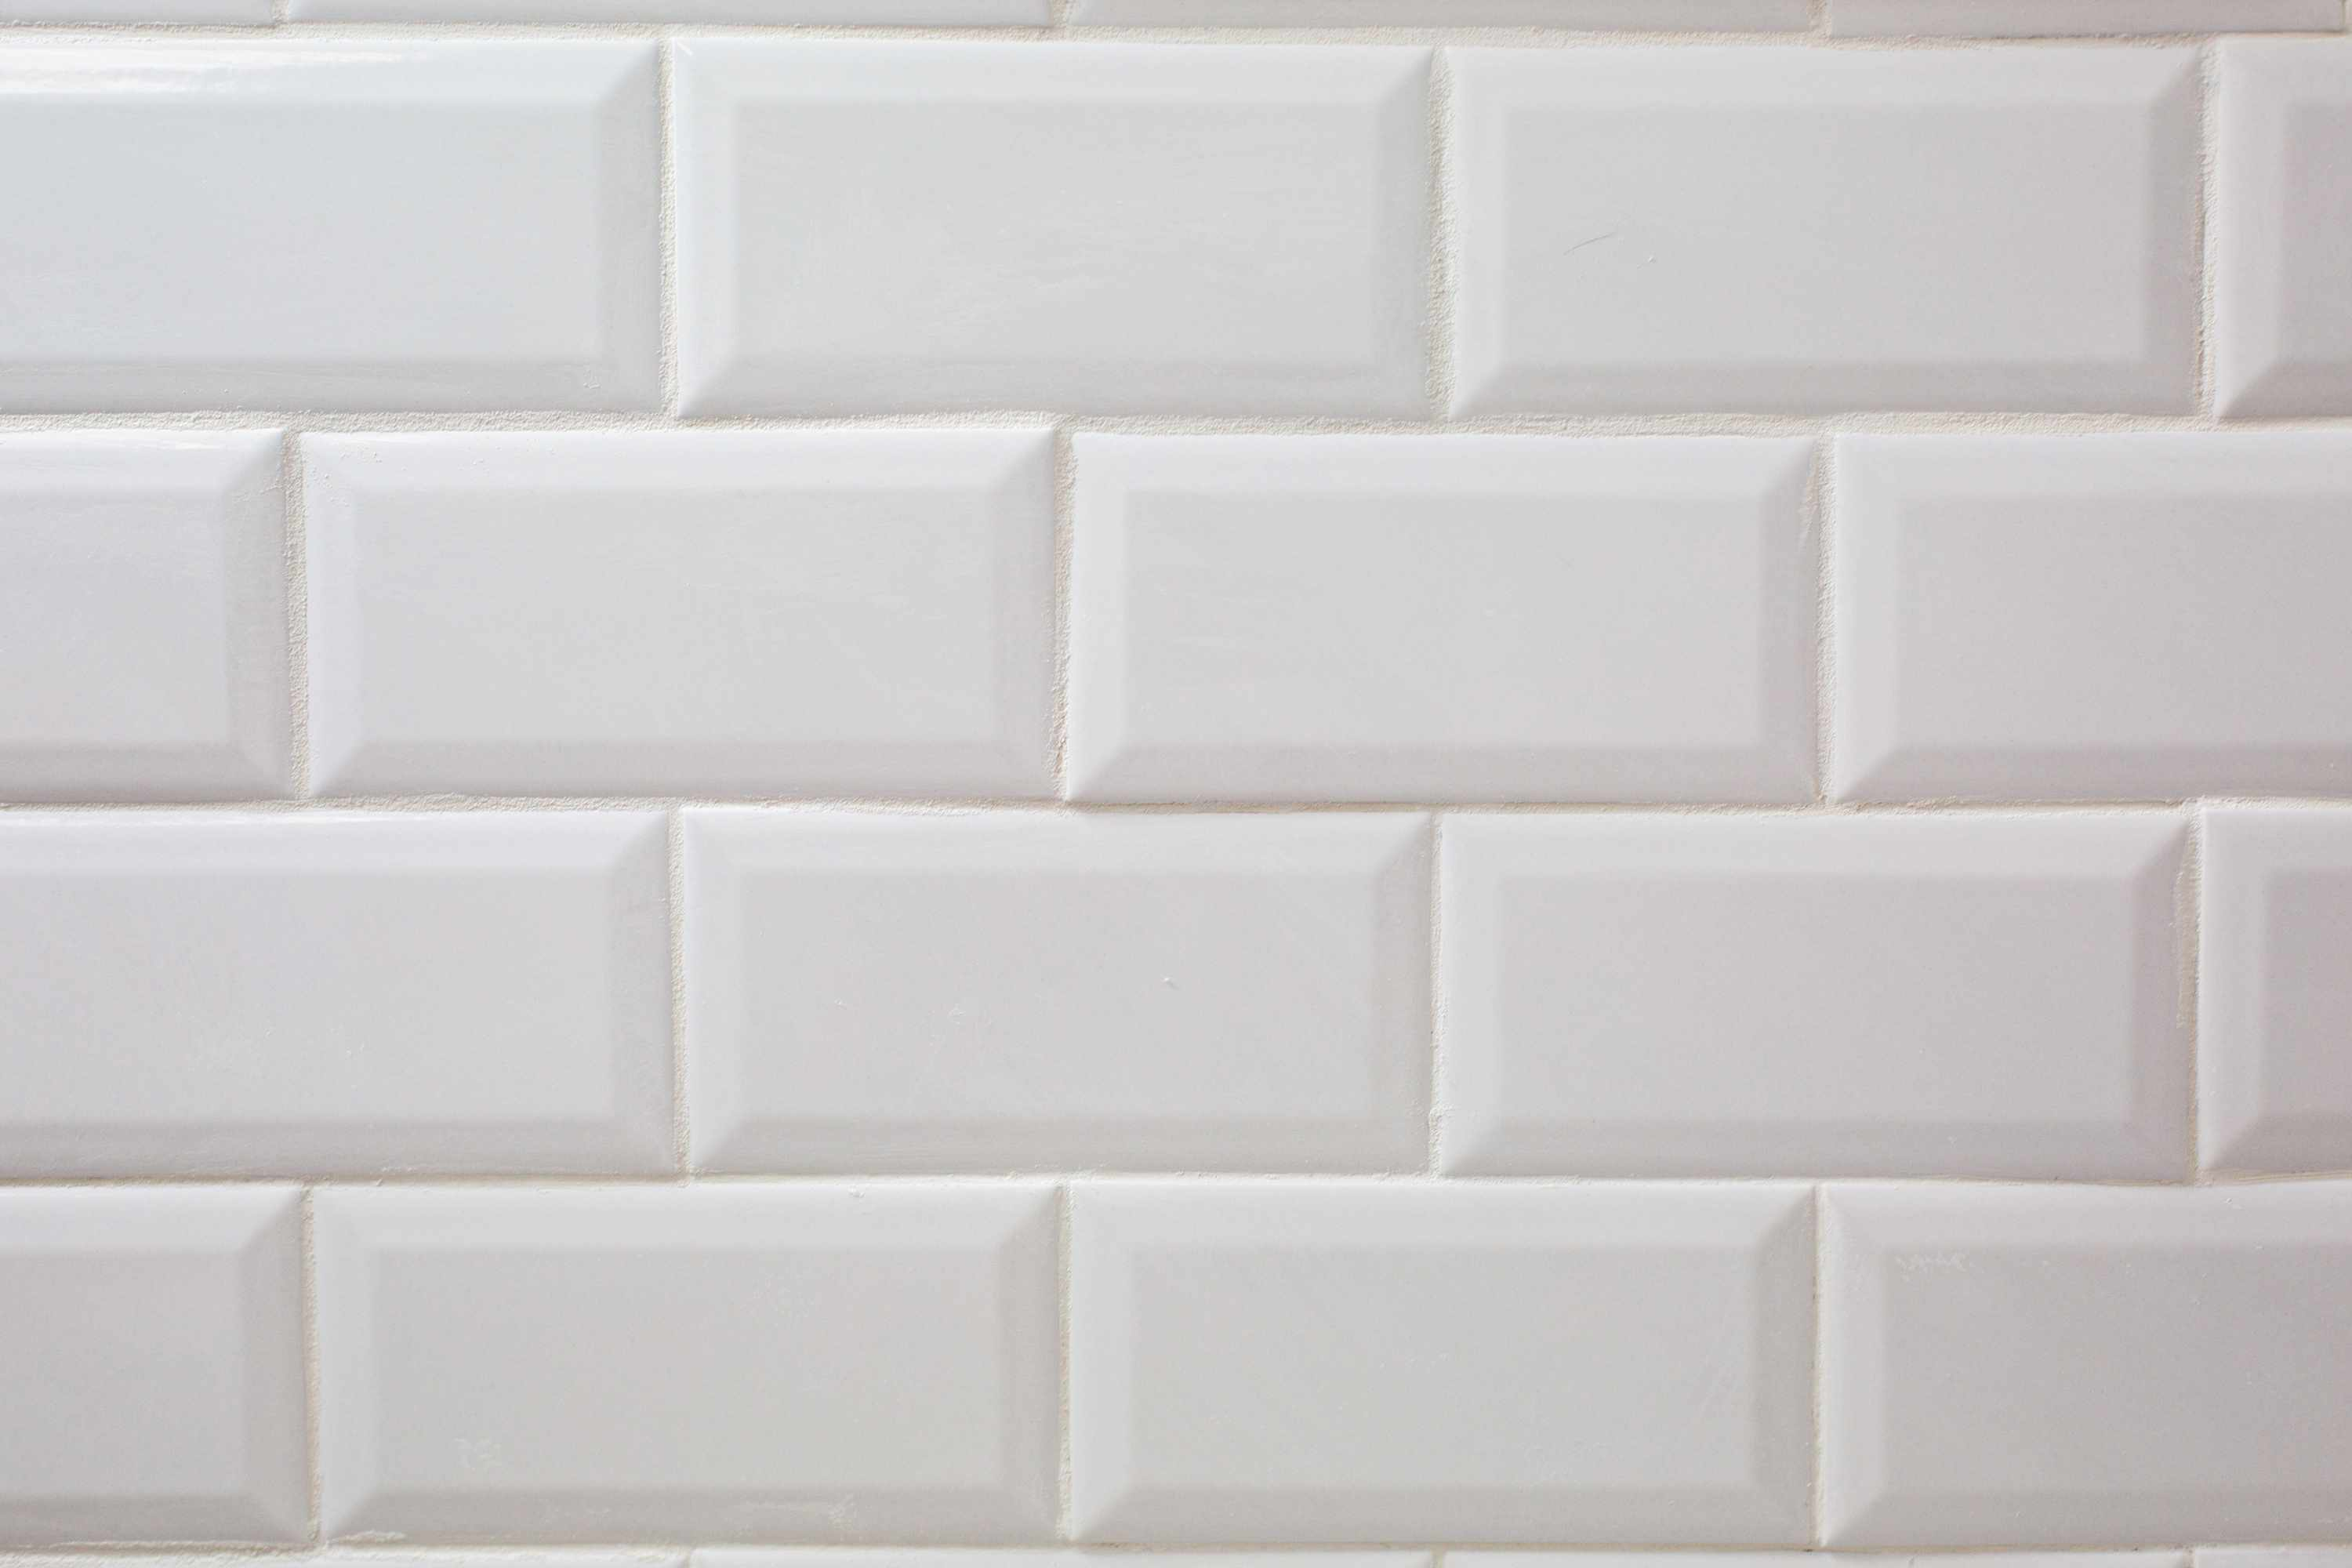 White tiled wall with cured grout